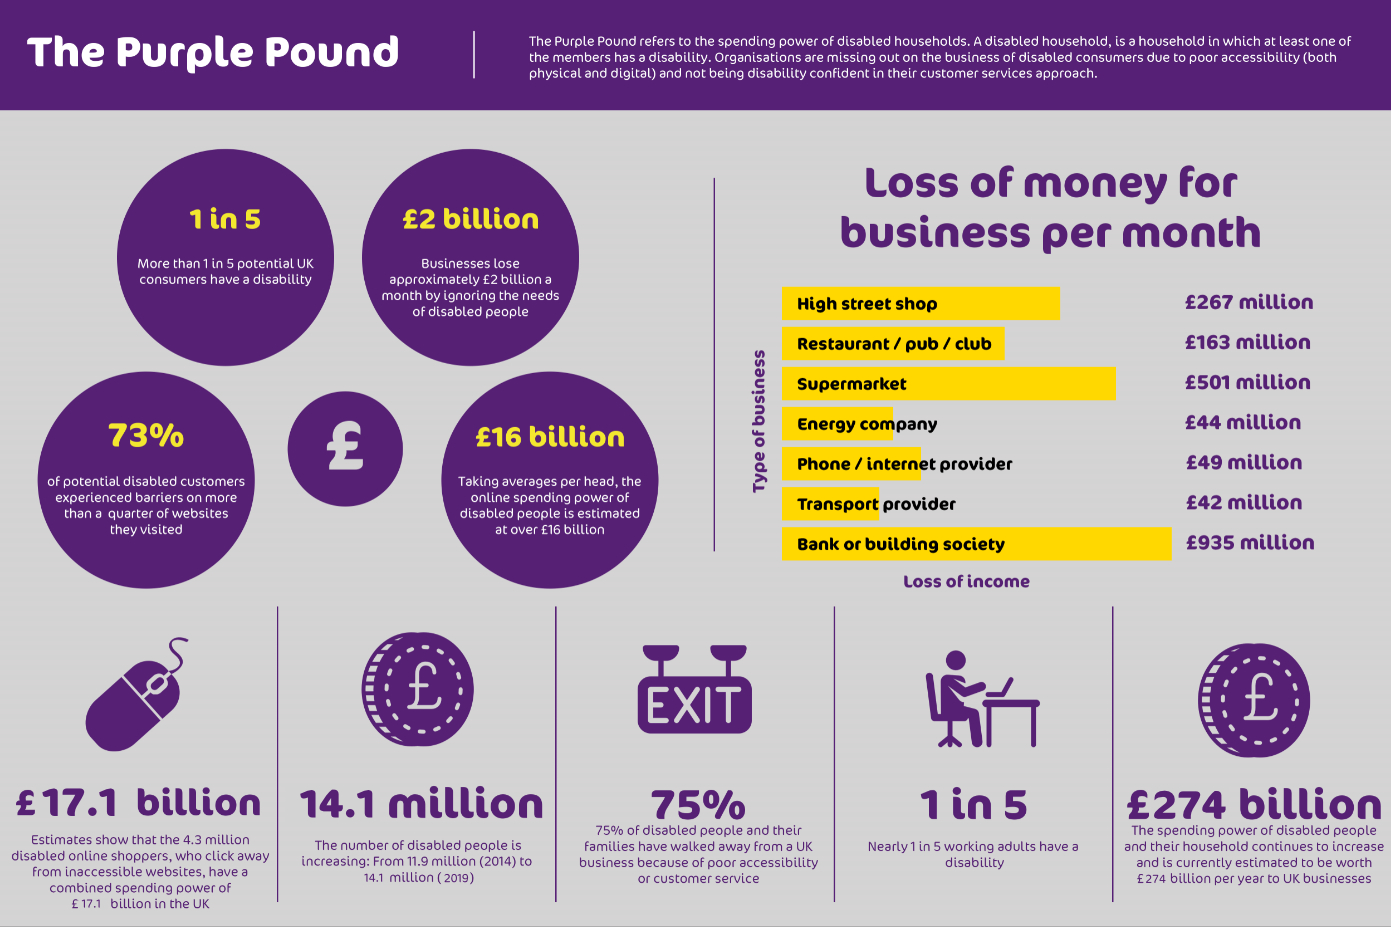 Infographic with facts and figures on the Purple Pound.